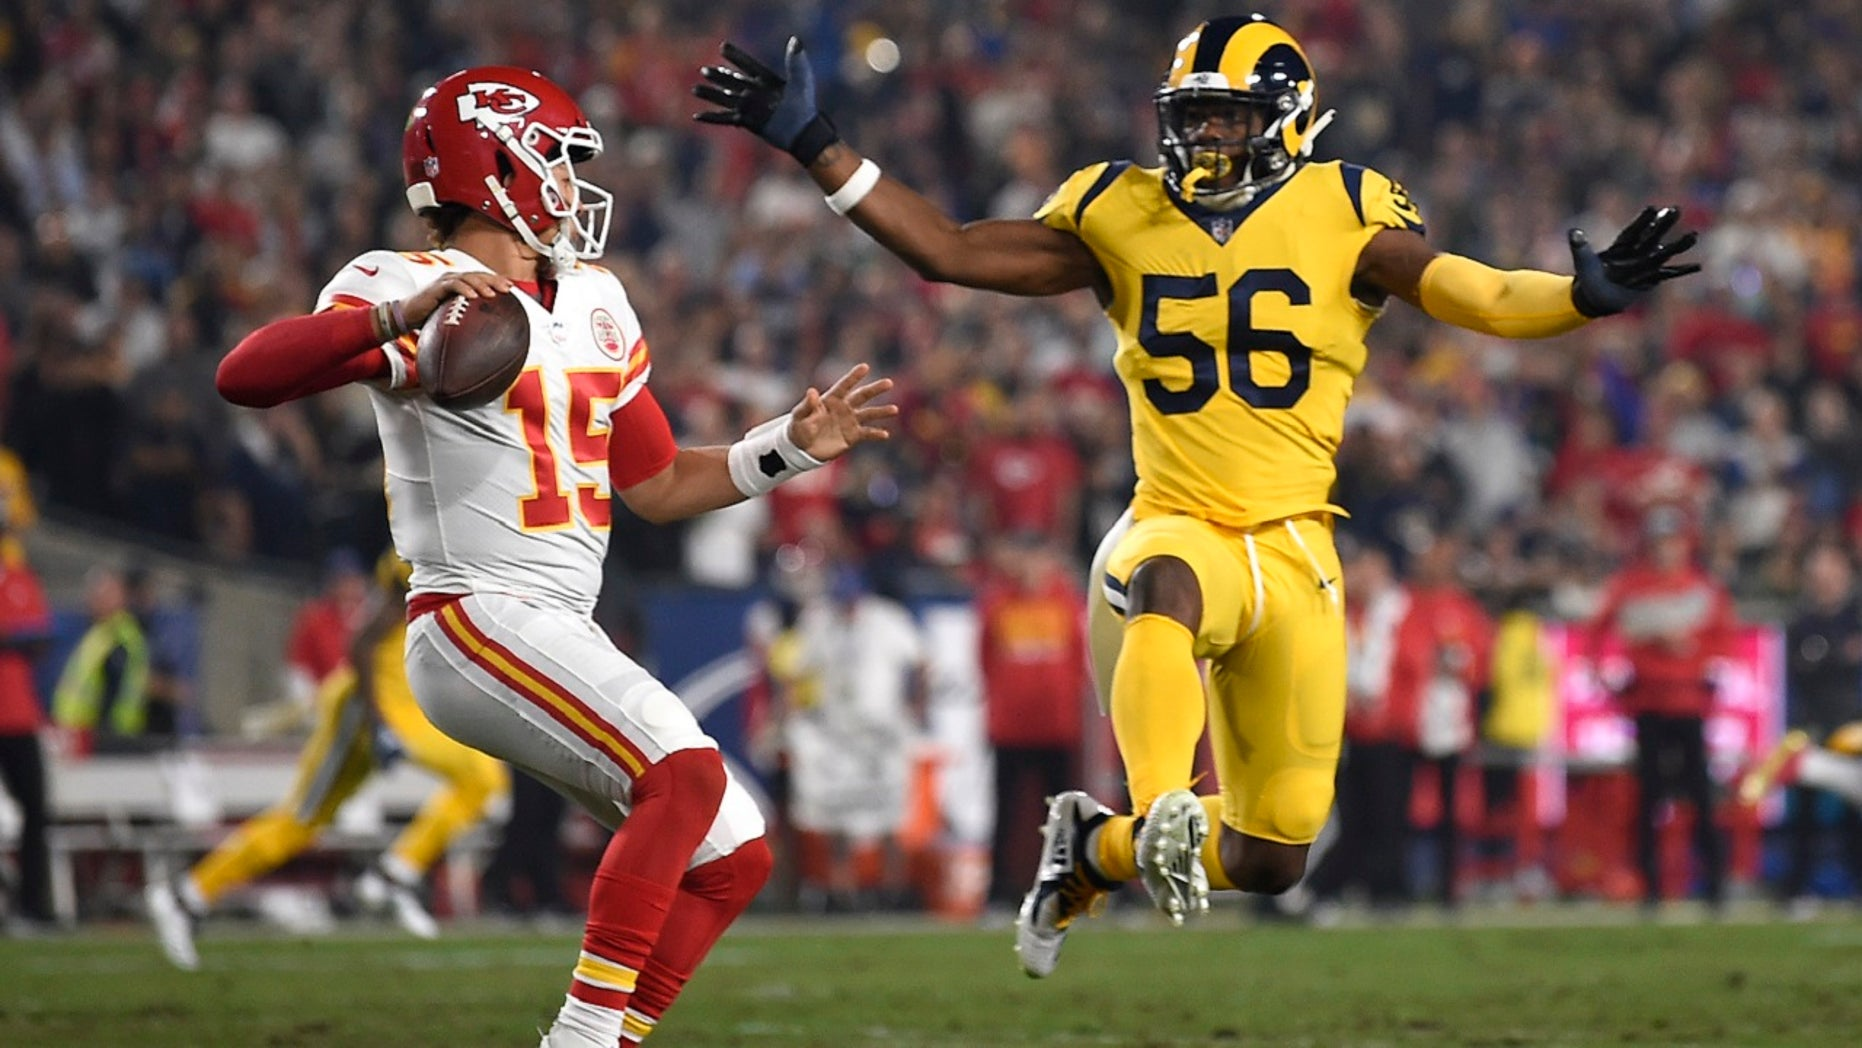 Rams outlast Chiefs 54-51 in record Monday night showdown